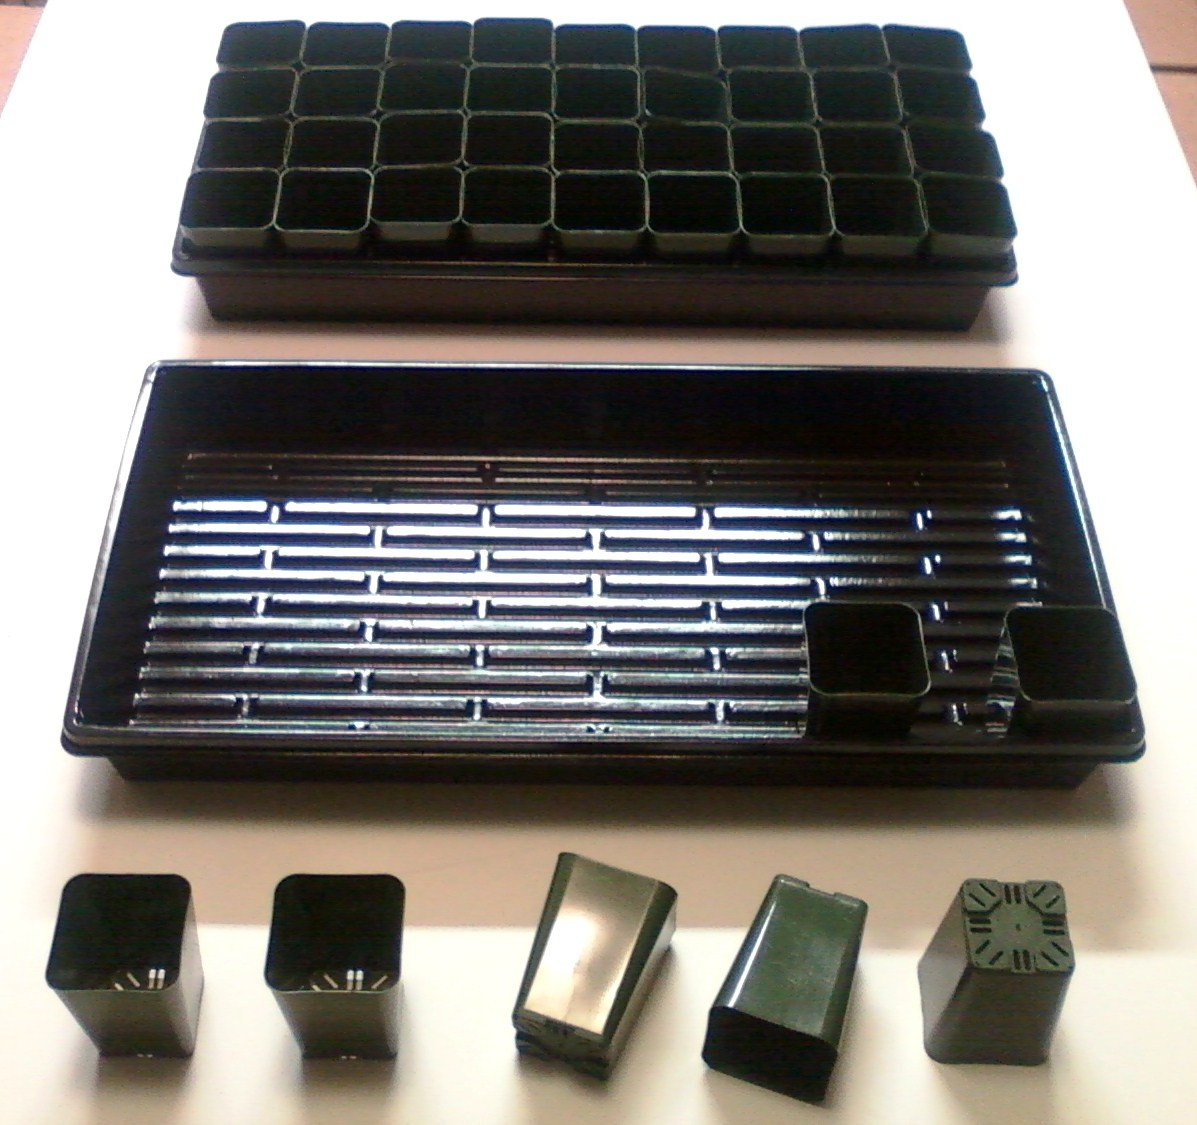 432 Rose Pots + 12 Solid Bottom 1020 Trays - 2 1/4'' Square x 3 1/4'' Deep Pots